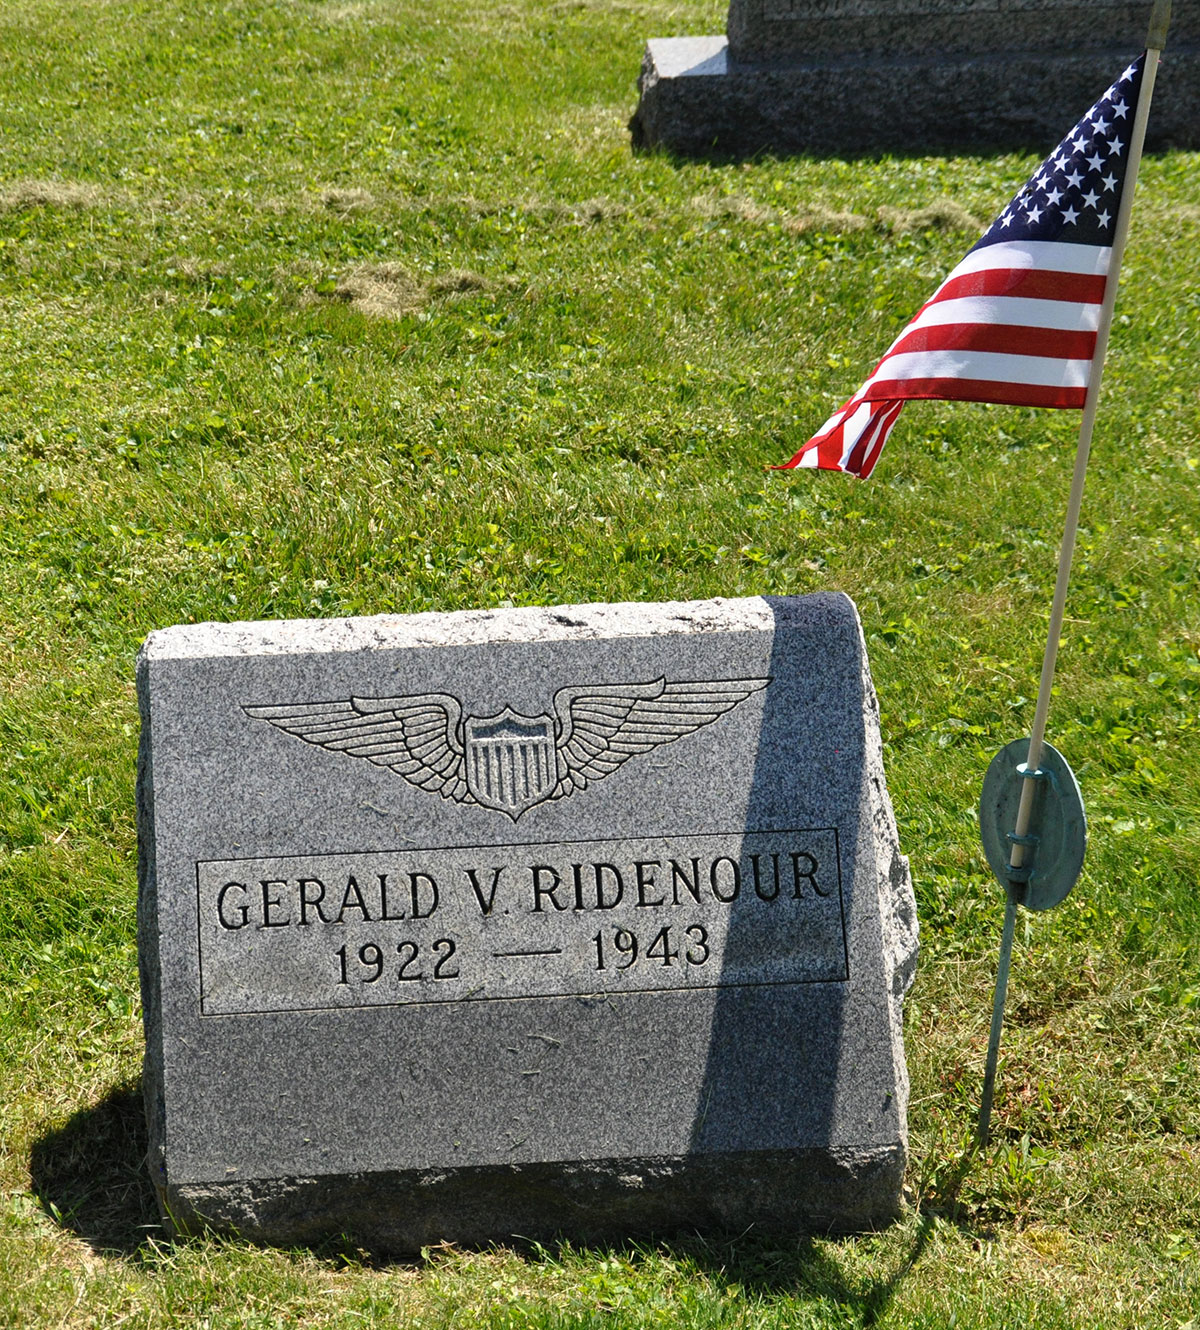 Gerald V. Ridenour tombstone, Highland Cemetery, Glenford, Perry County, Ohio. Photo by Amy Johnson Crow, 23 May 2015.